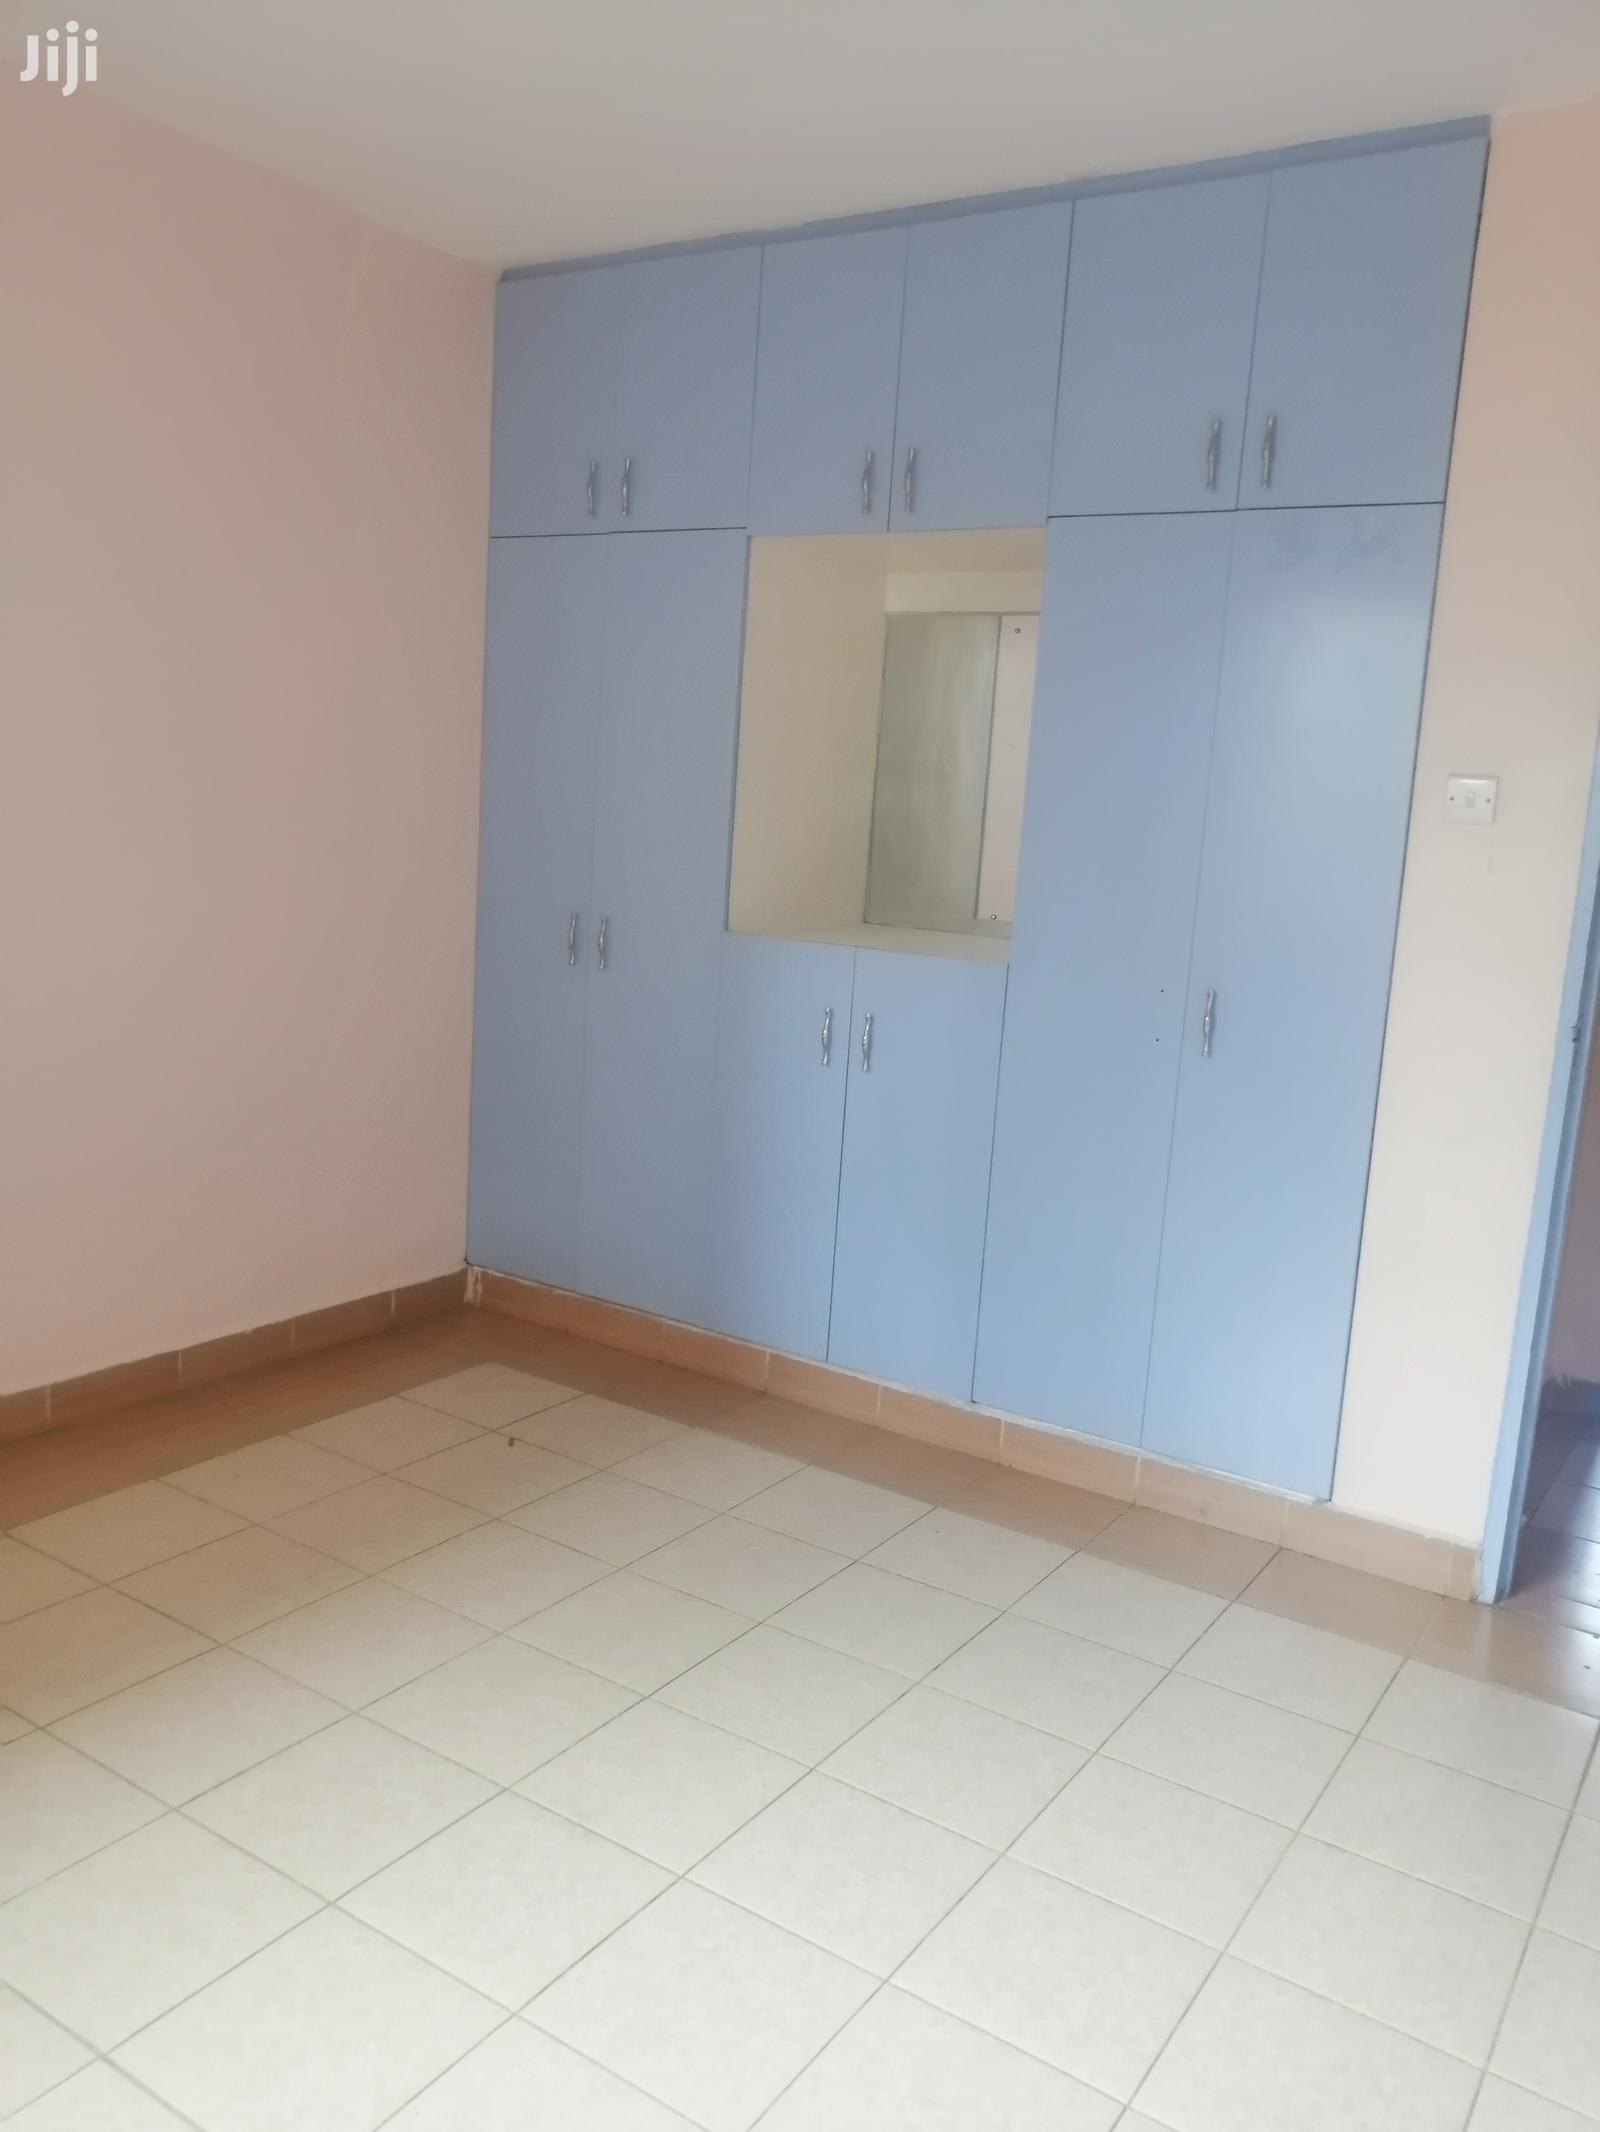 2 Bedroom Apartment for Rent Near Thorn Tree | Houses & Apartments For Rent for sale in Ongata Rongai, Kajiado, Kenya